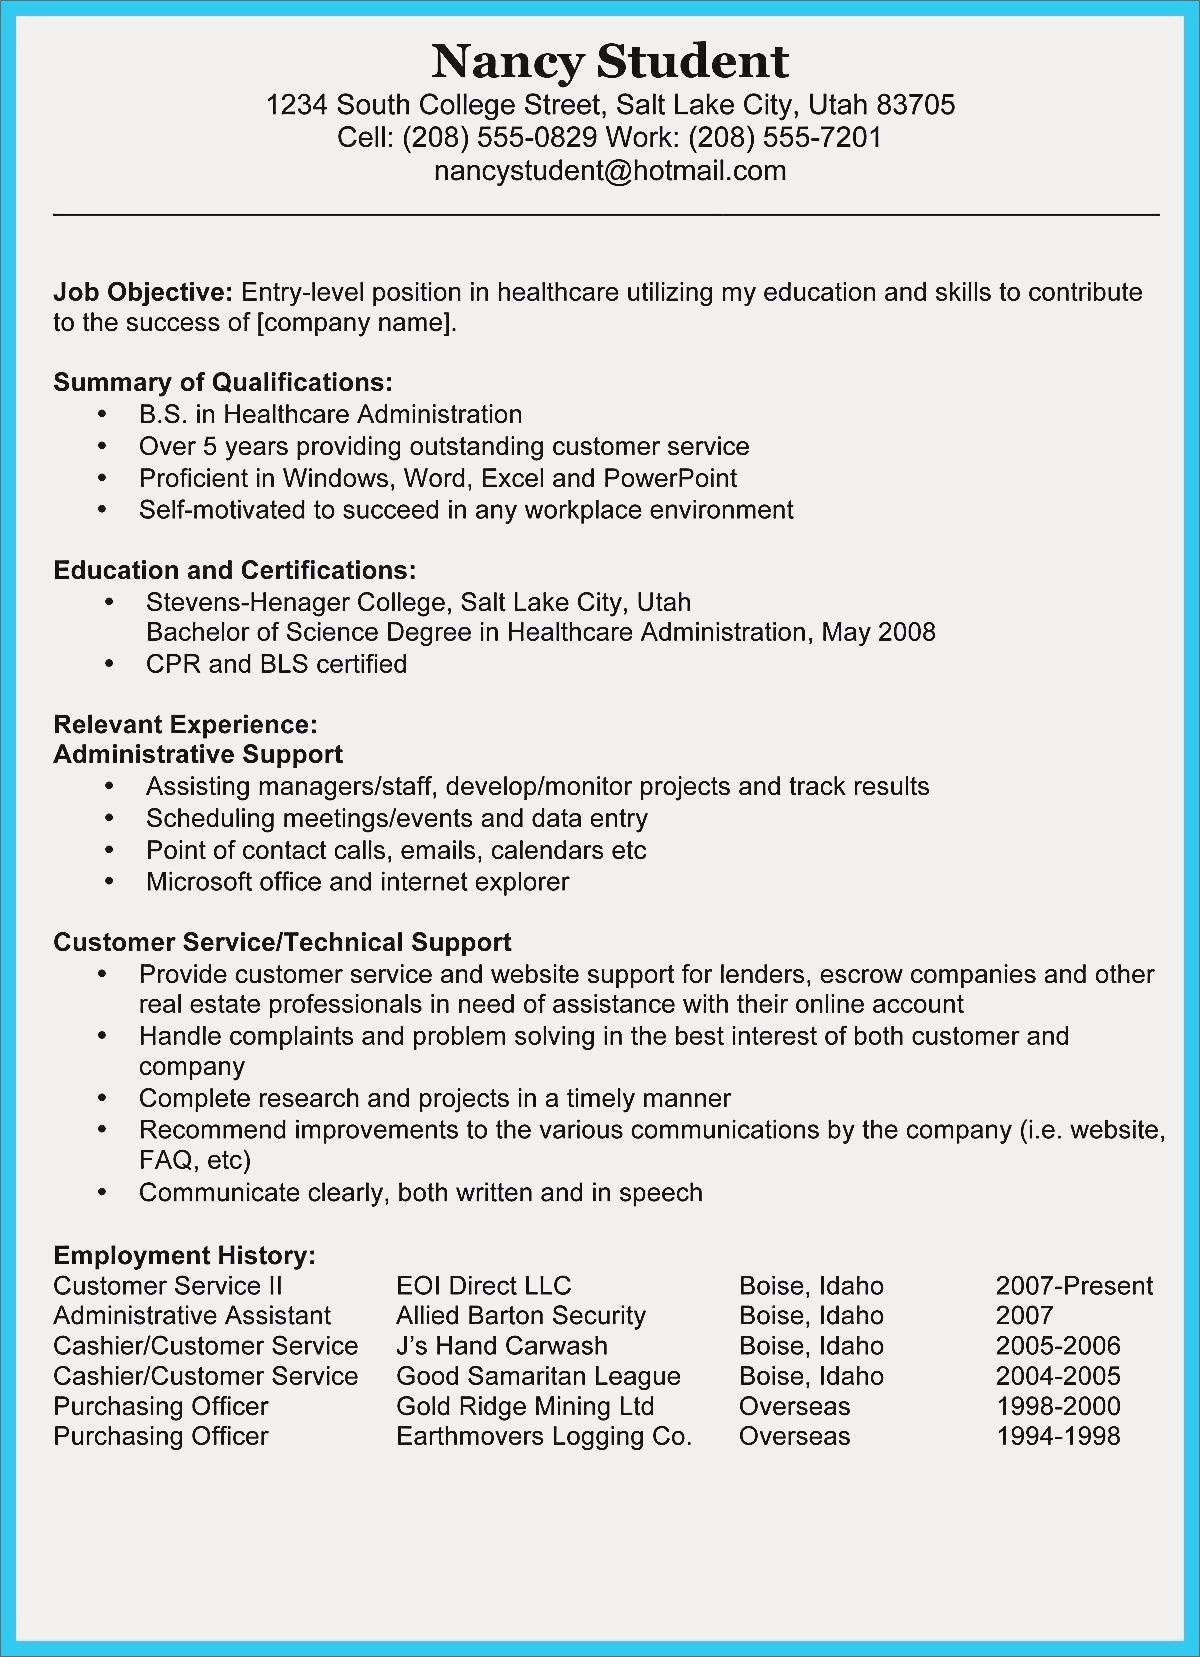 study abroad on resume lovely title examples for hospitality cool stock gmail in skills Resume Resume Sample For Work Abroad